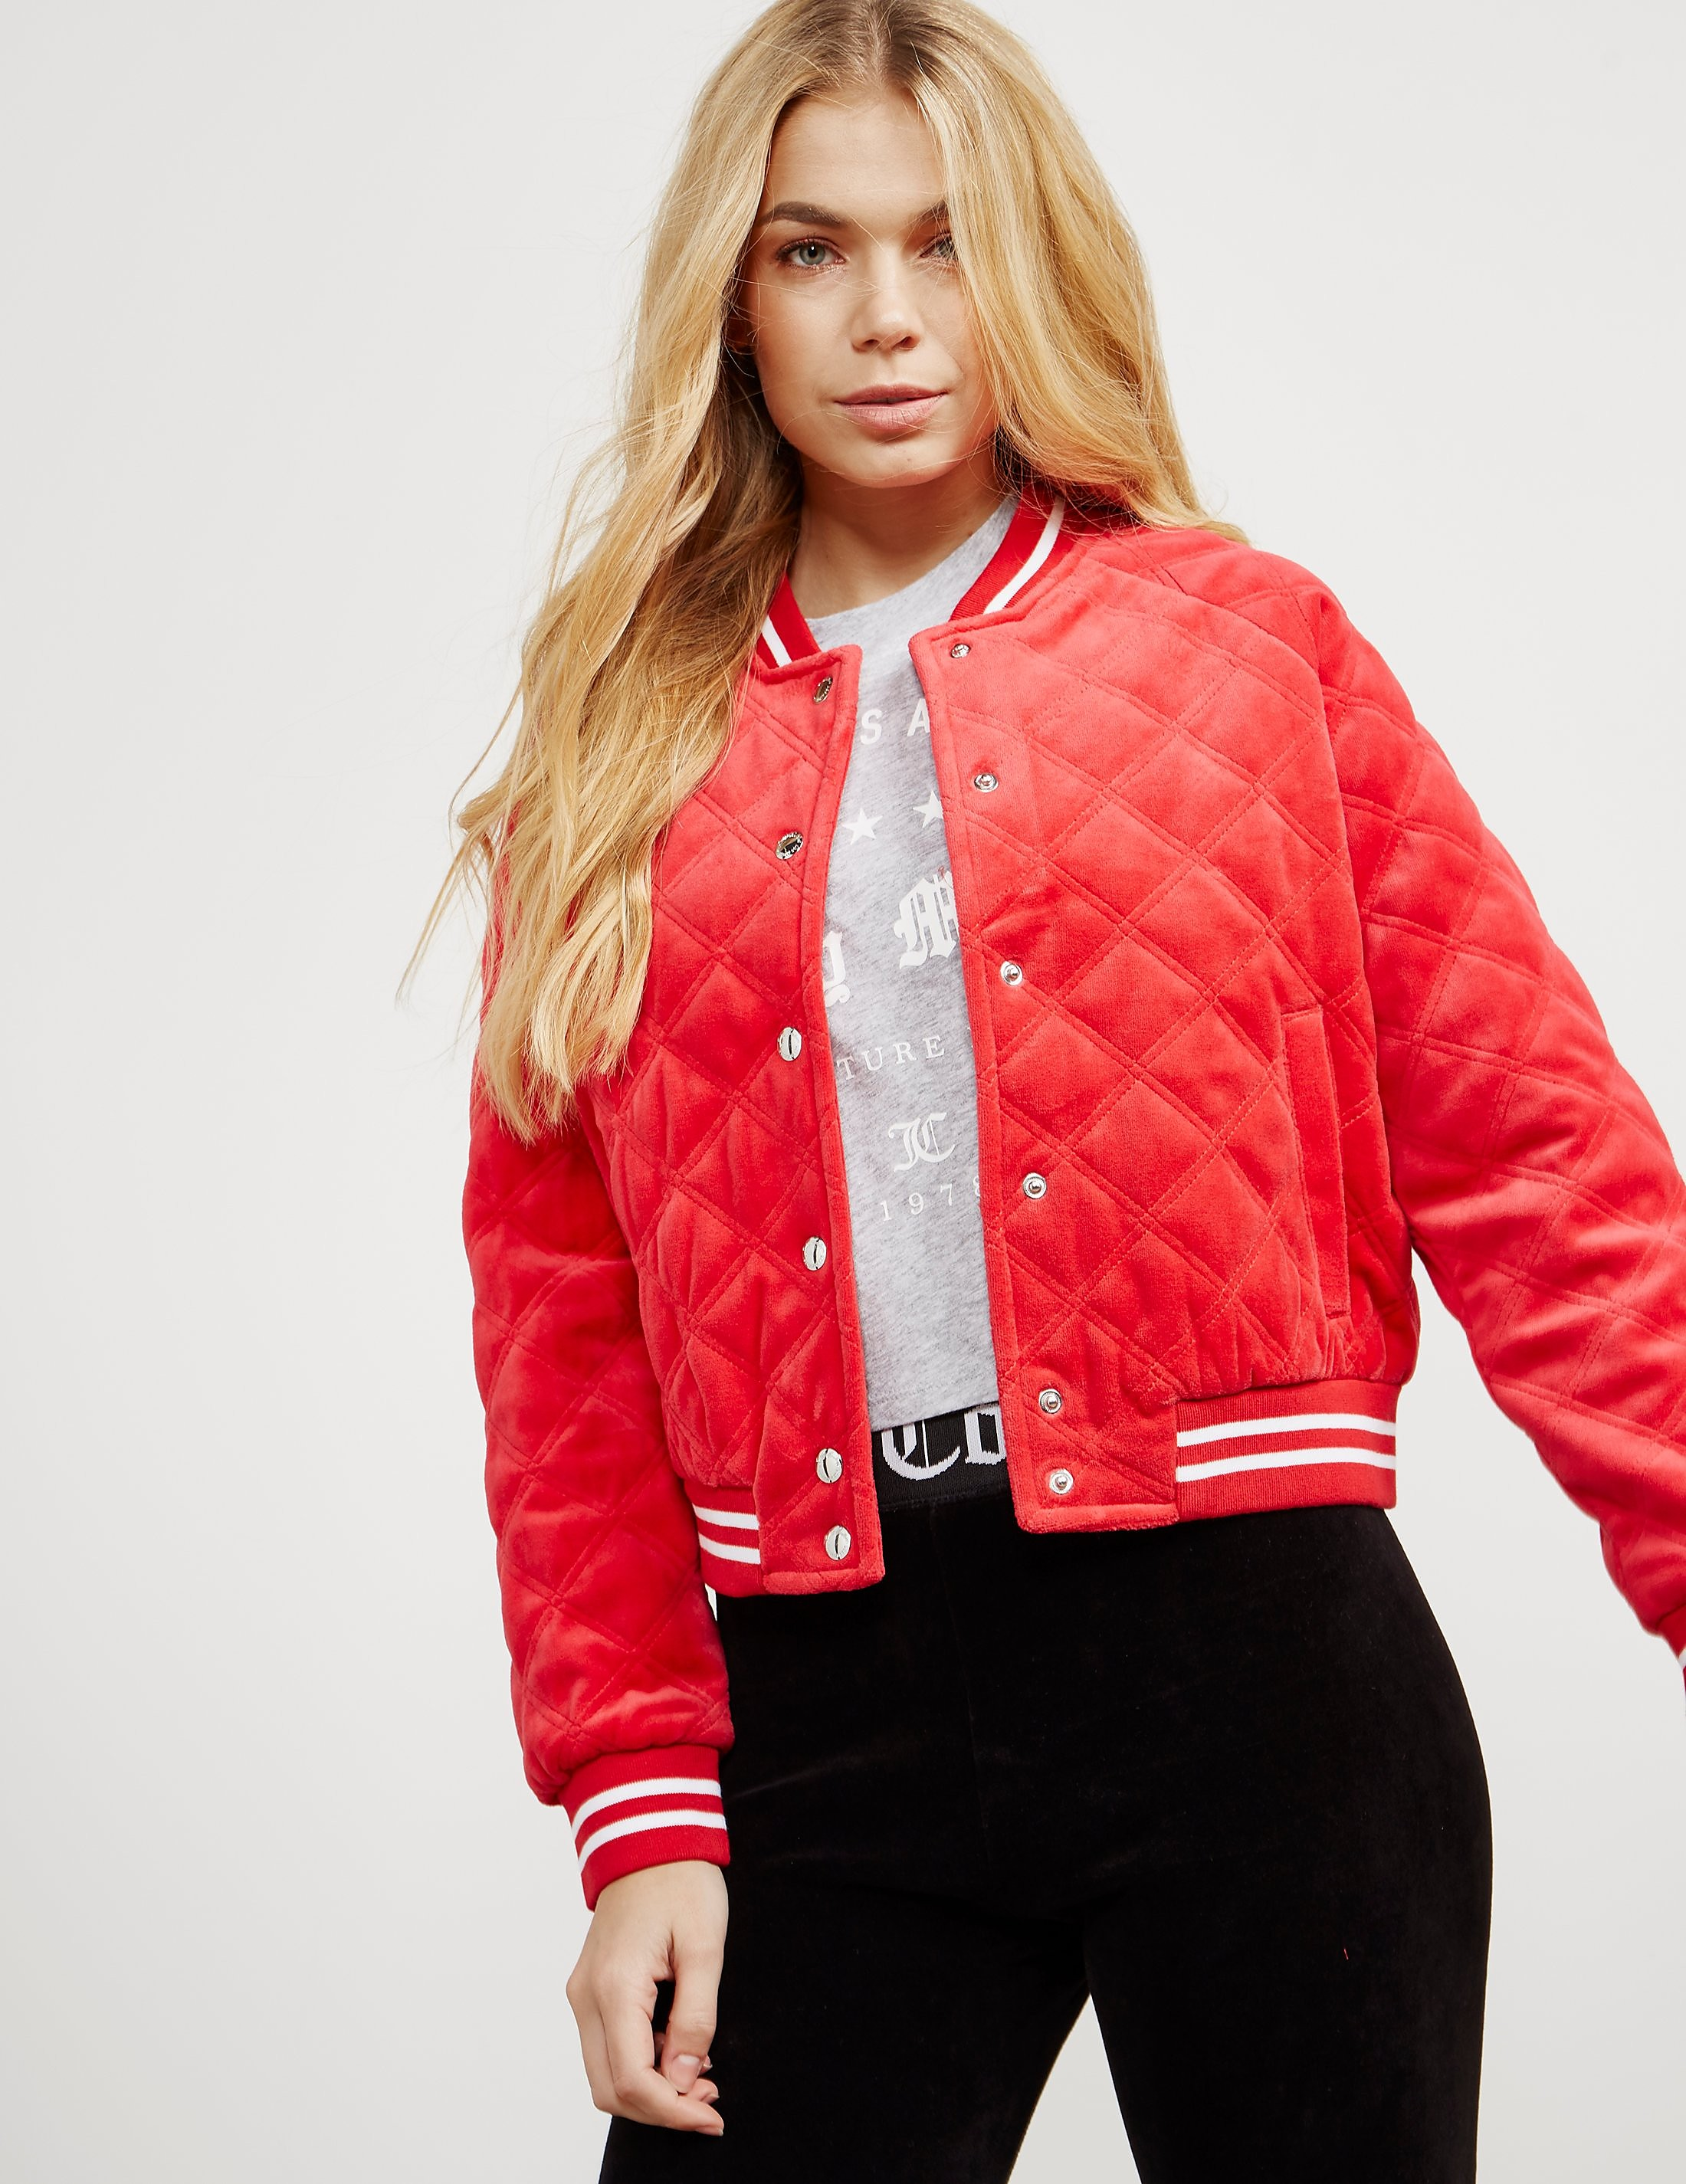 Juicy Couture Quilted Bomber Jacket - Online Exclusive